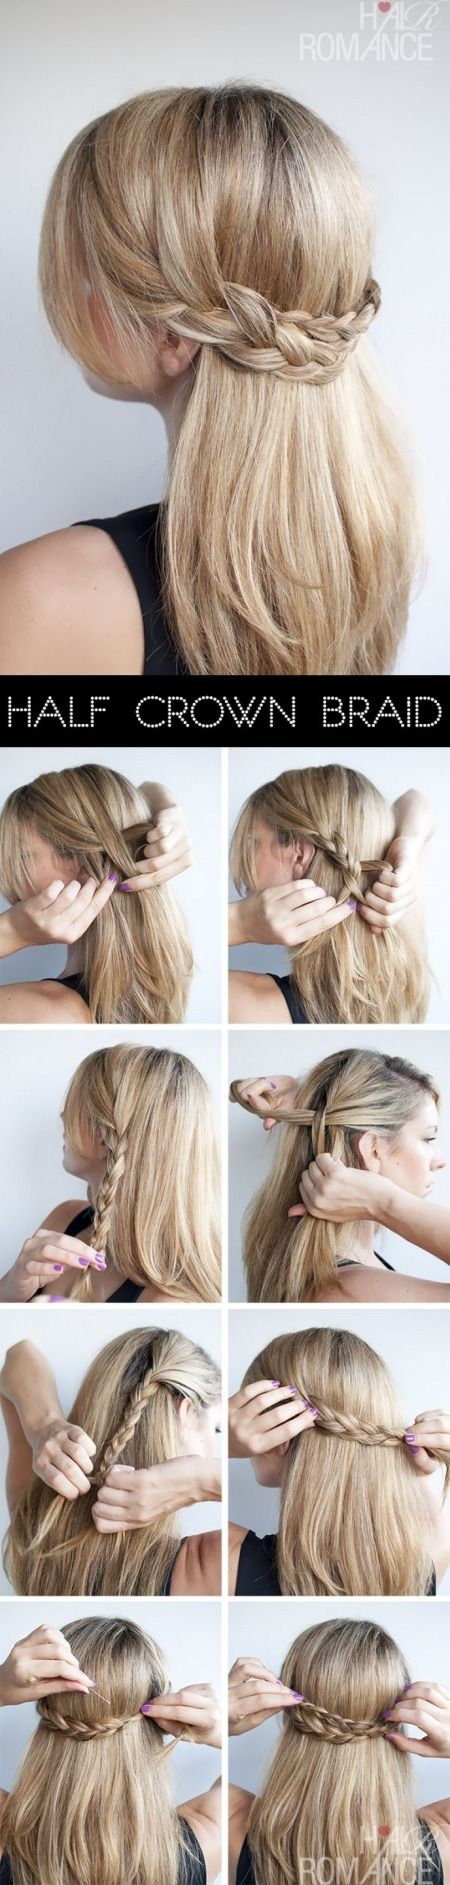 I dont know about the other but this braid is cute and easy amd